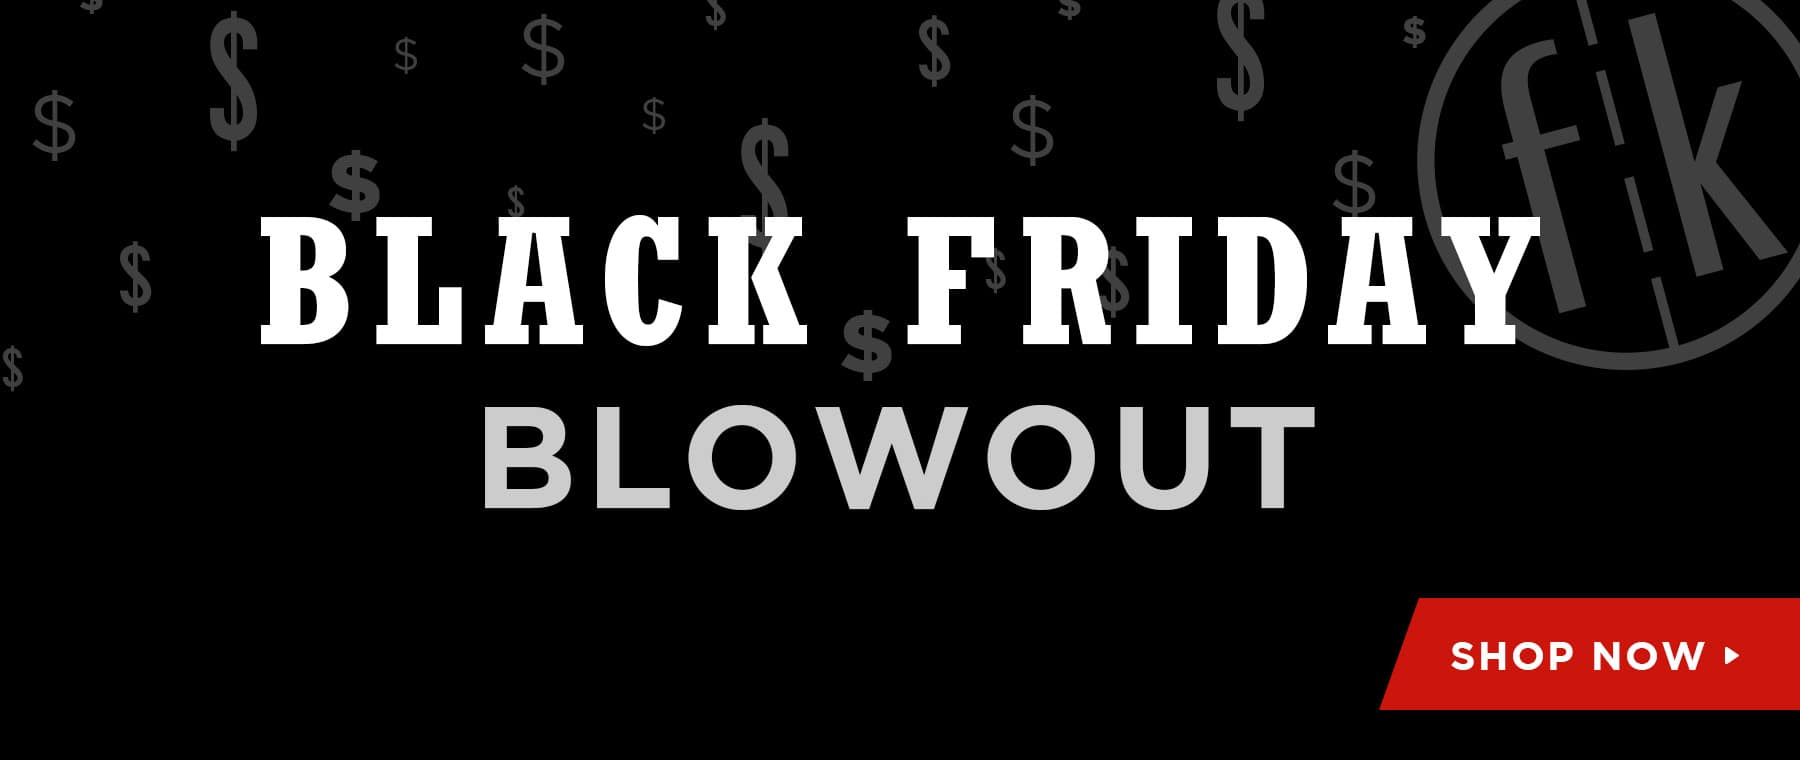 Black Friday Blowout